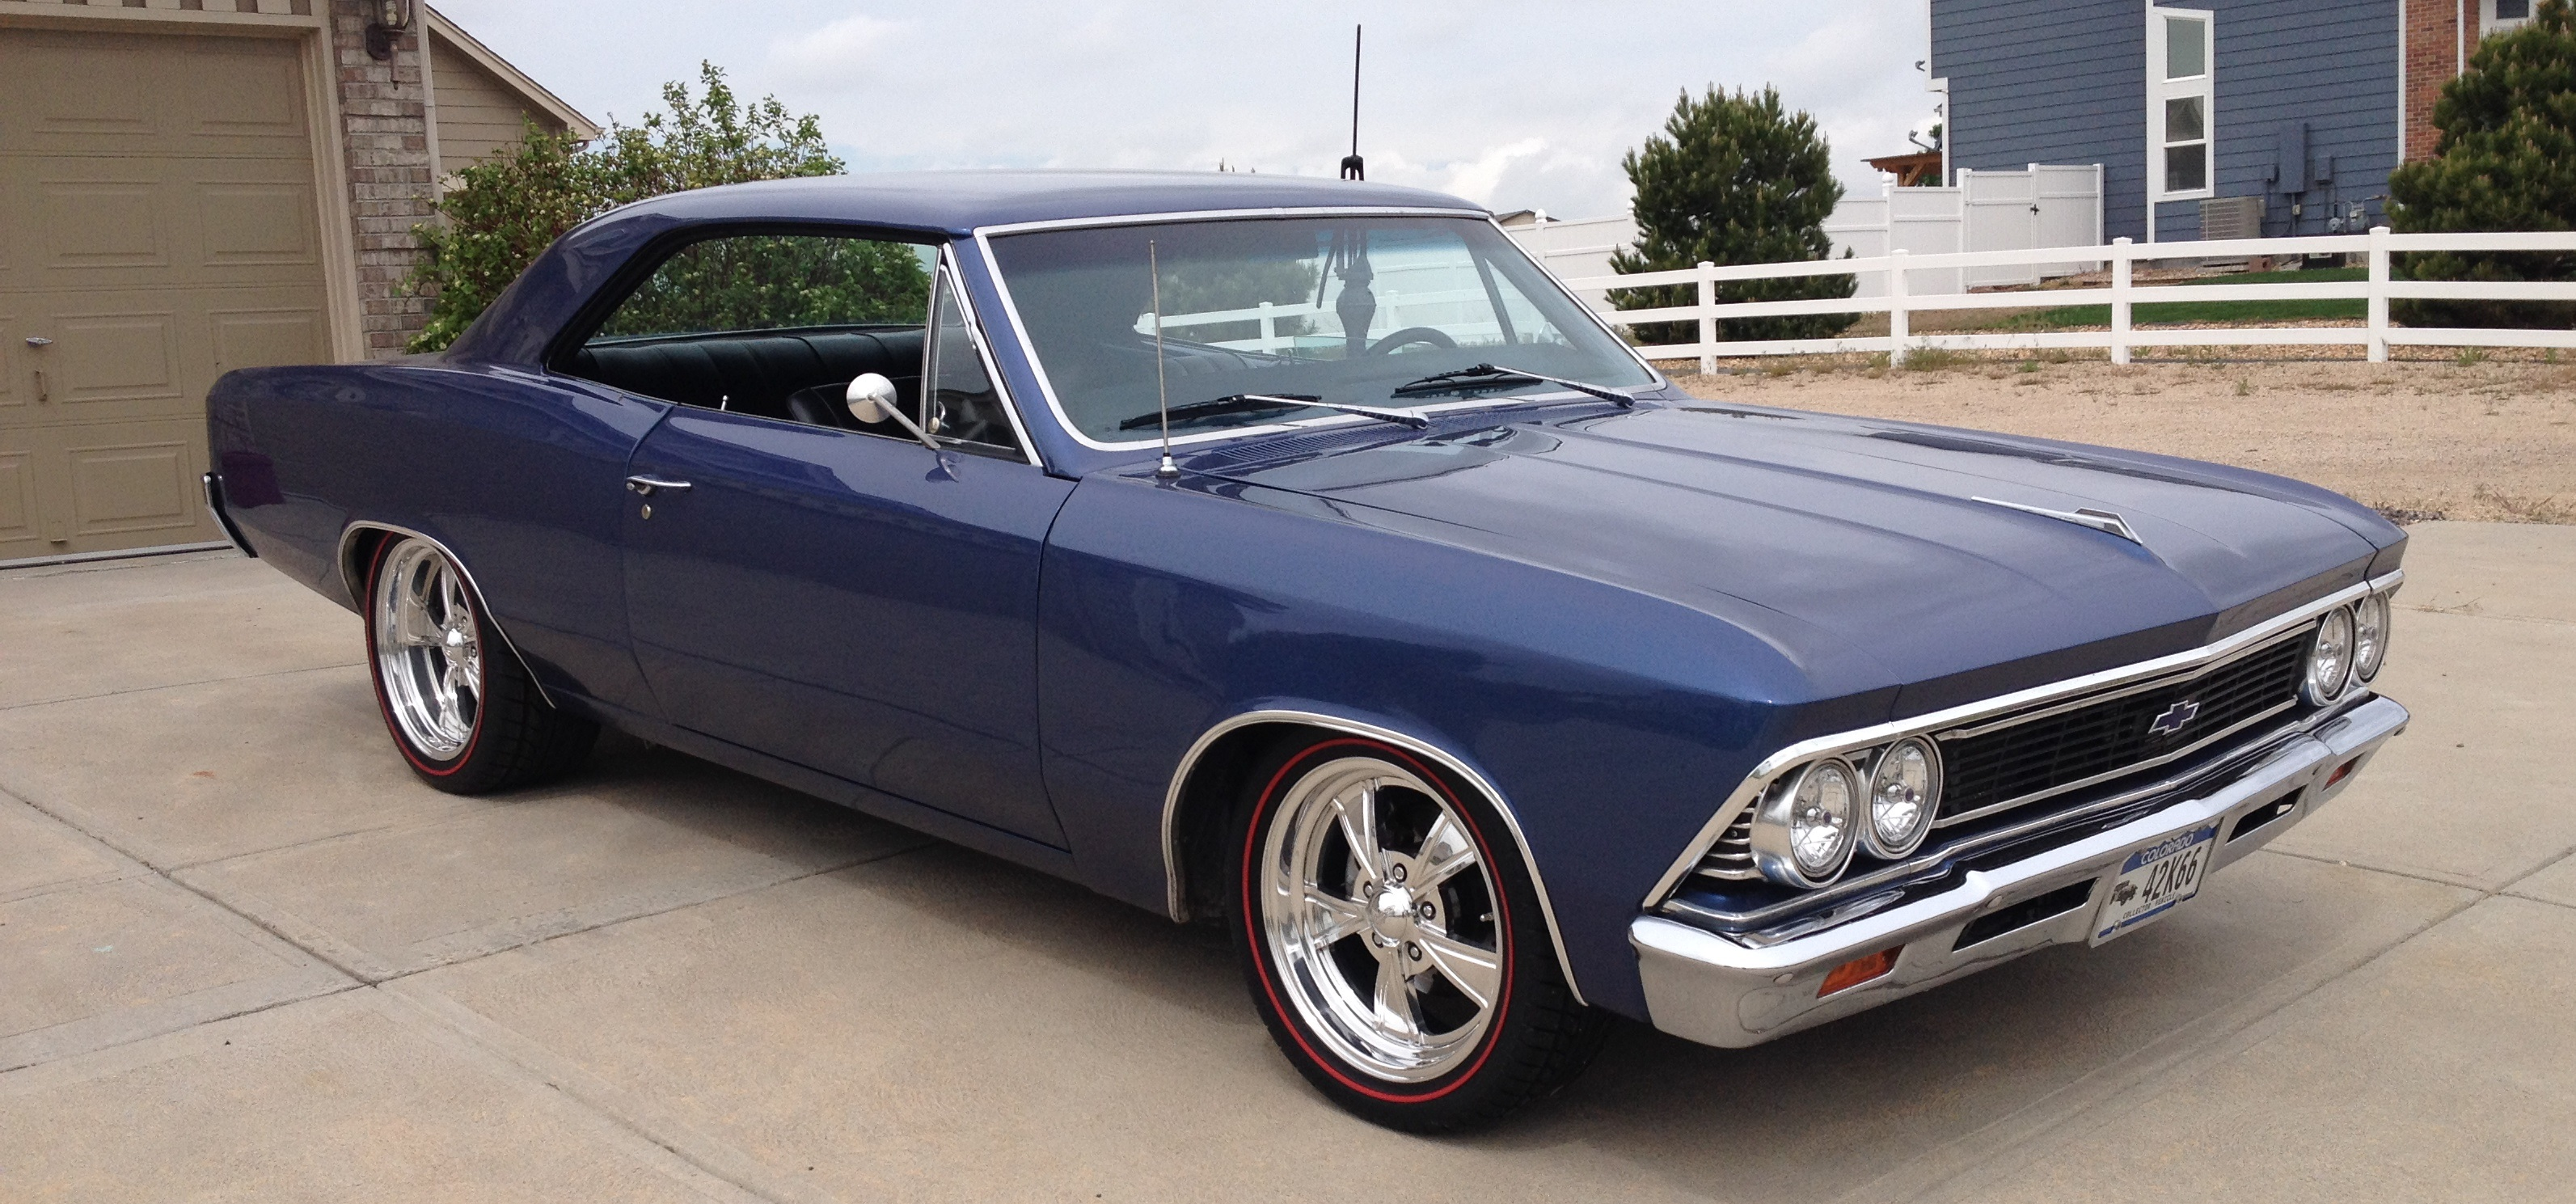 Muscle Cars - :